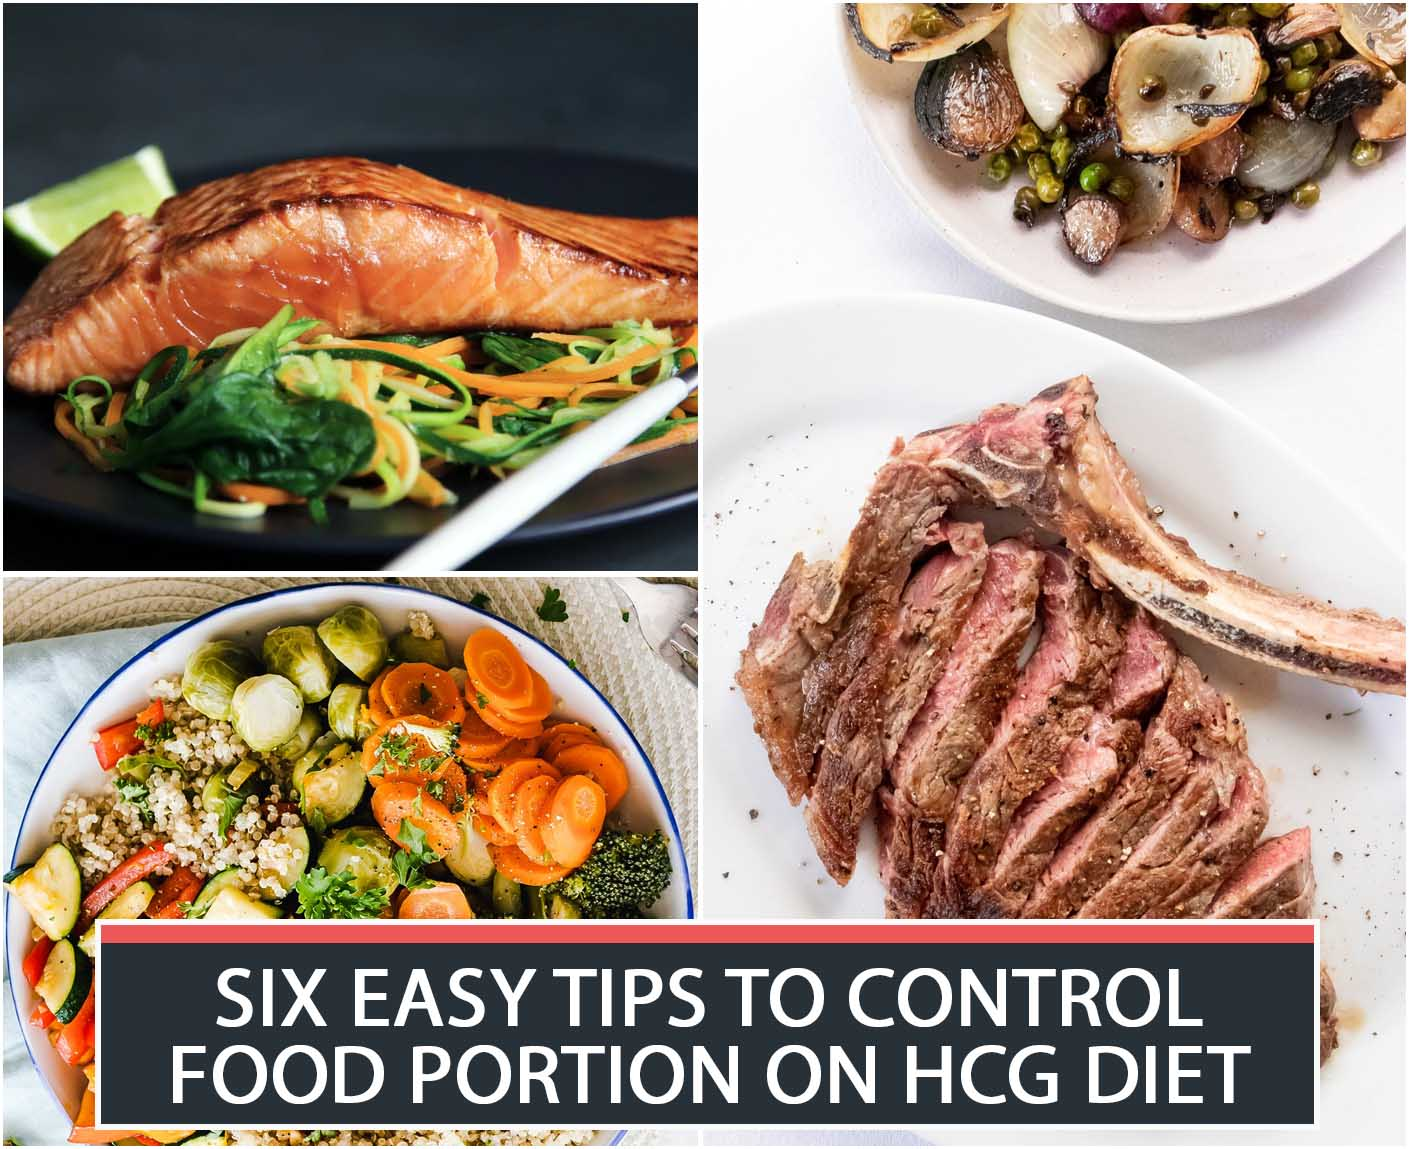 SIX EASY TIPS TO CONTROL FOOD PORTION ON HCG DIET